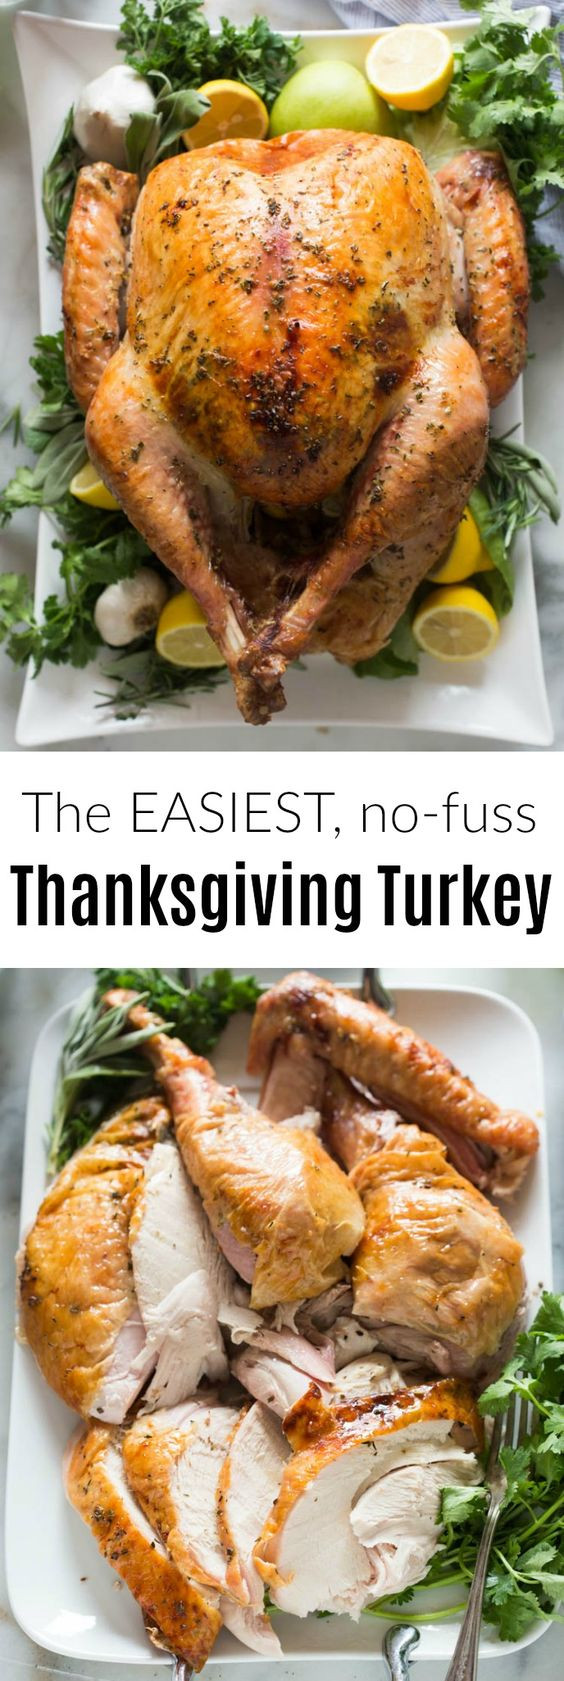 No Turkey Thanksgiving  20 Thanksgiving Turkey Recipes For The Perfect Roast The